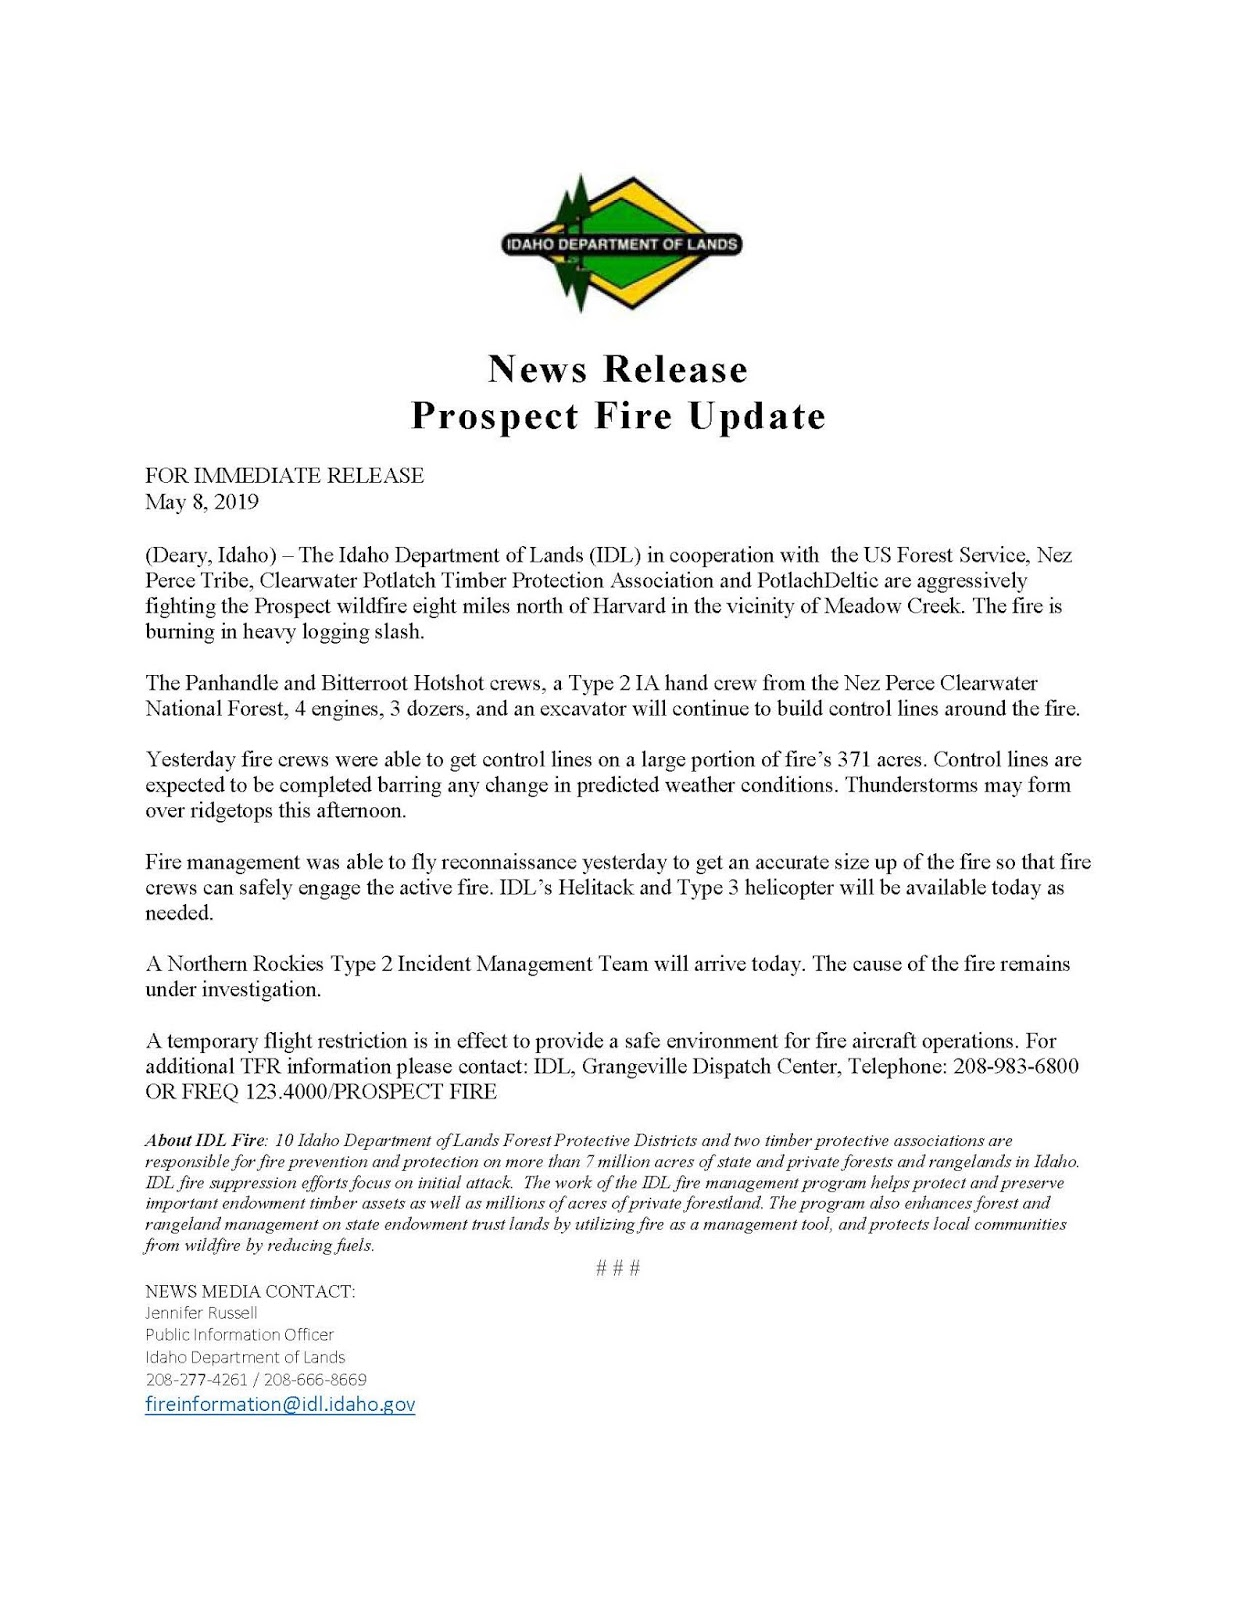 hight resolution of prospect fire update may 8th 2019